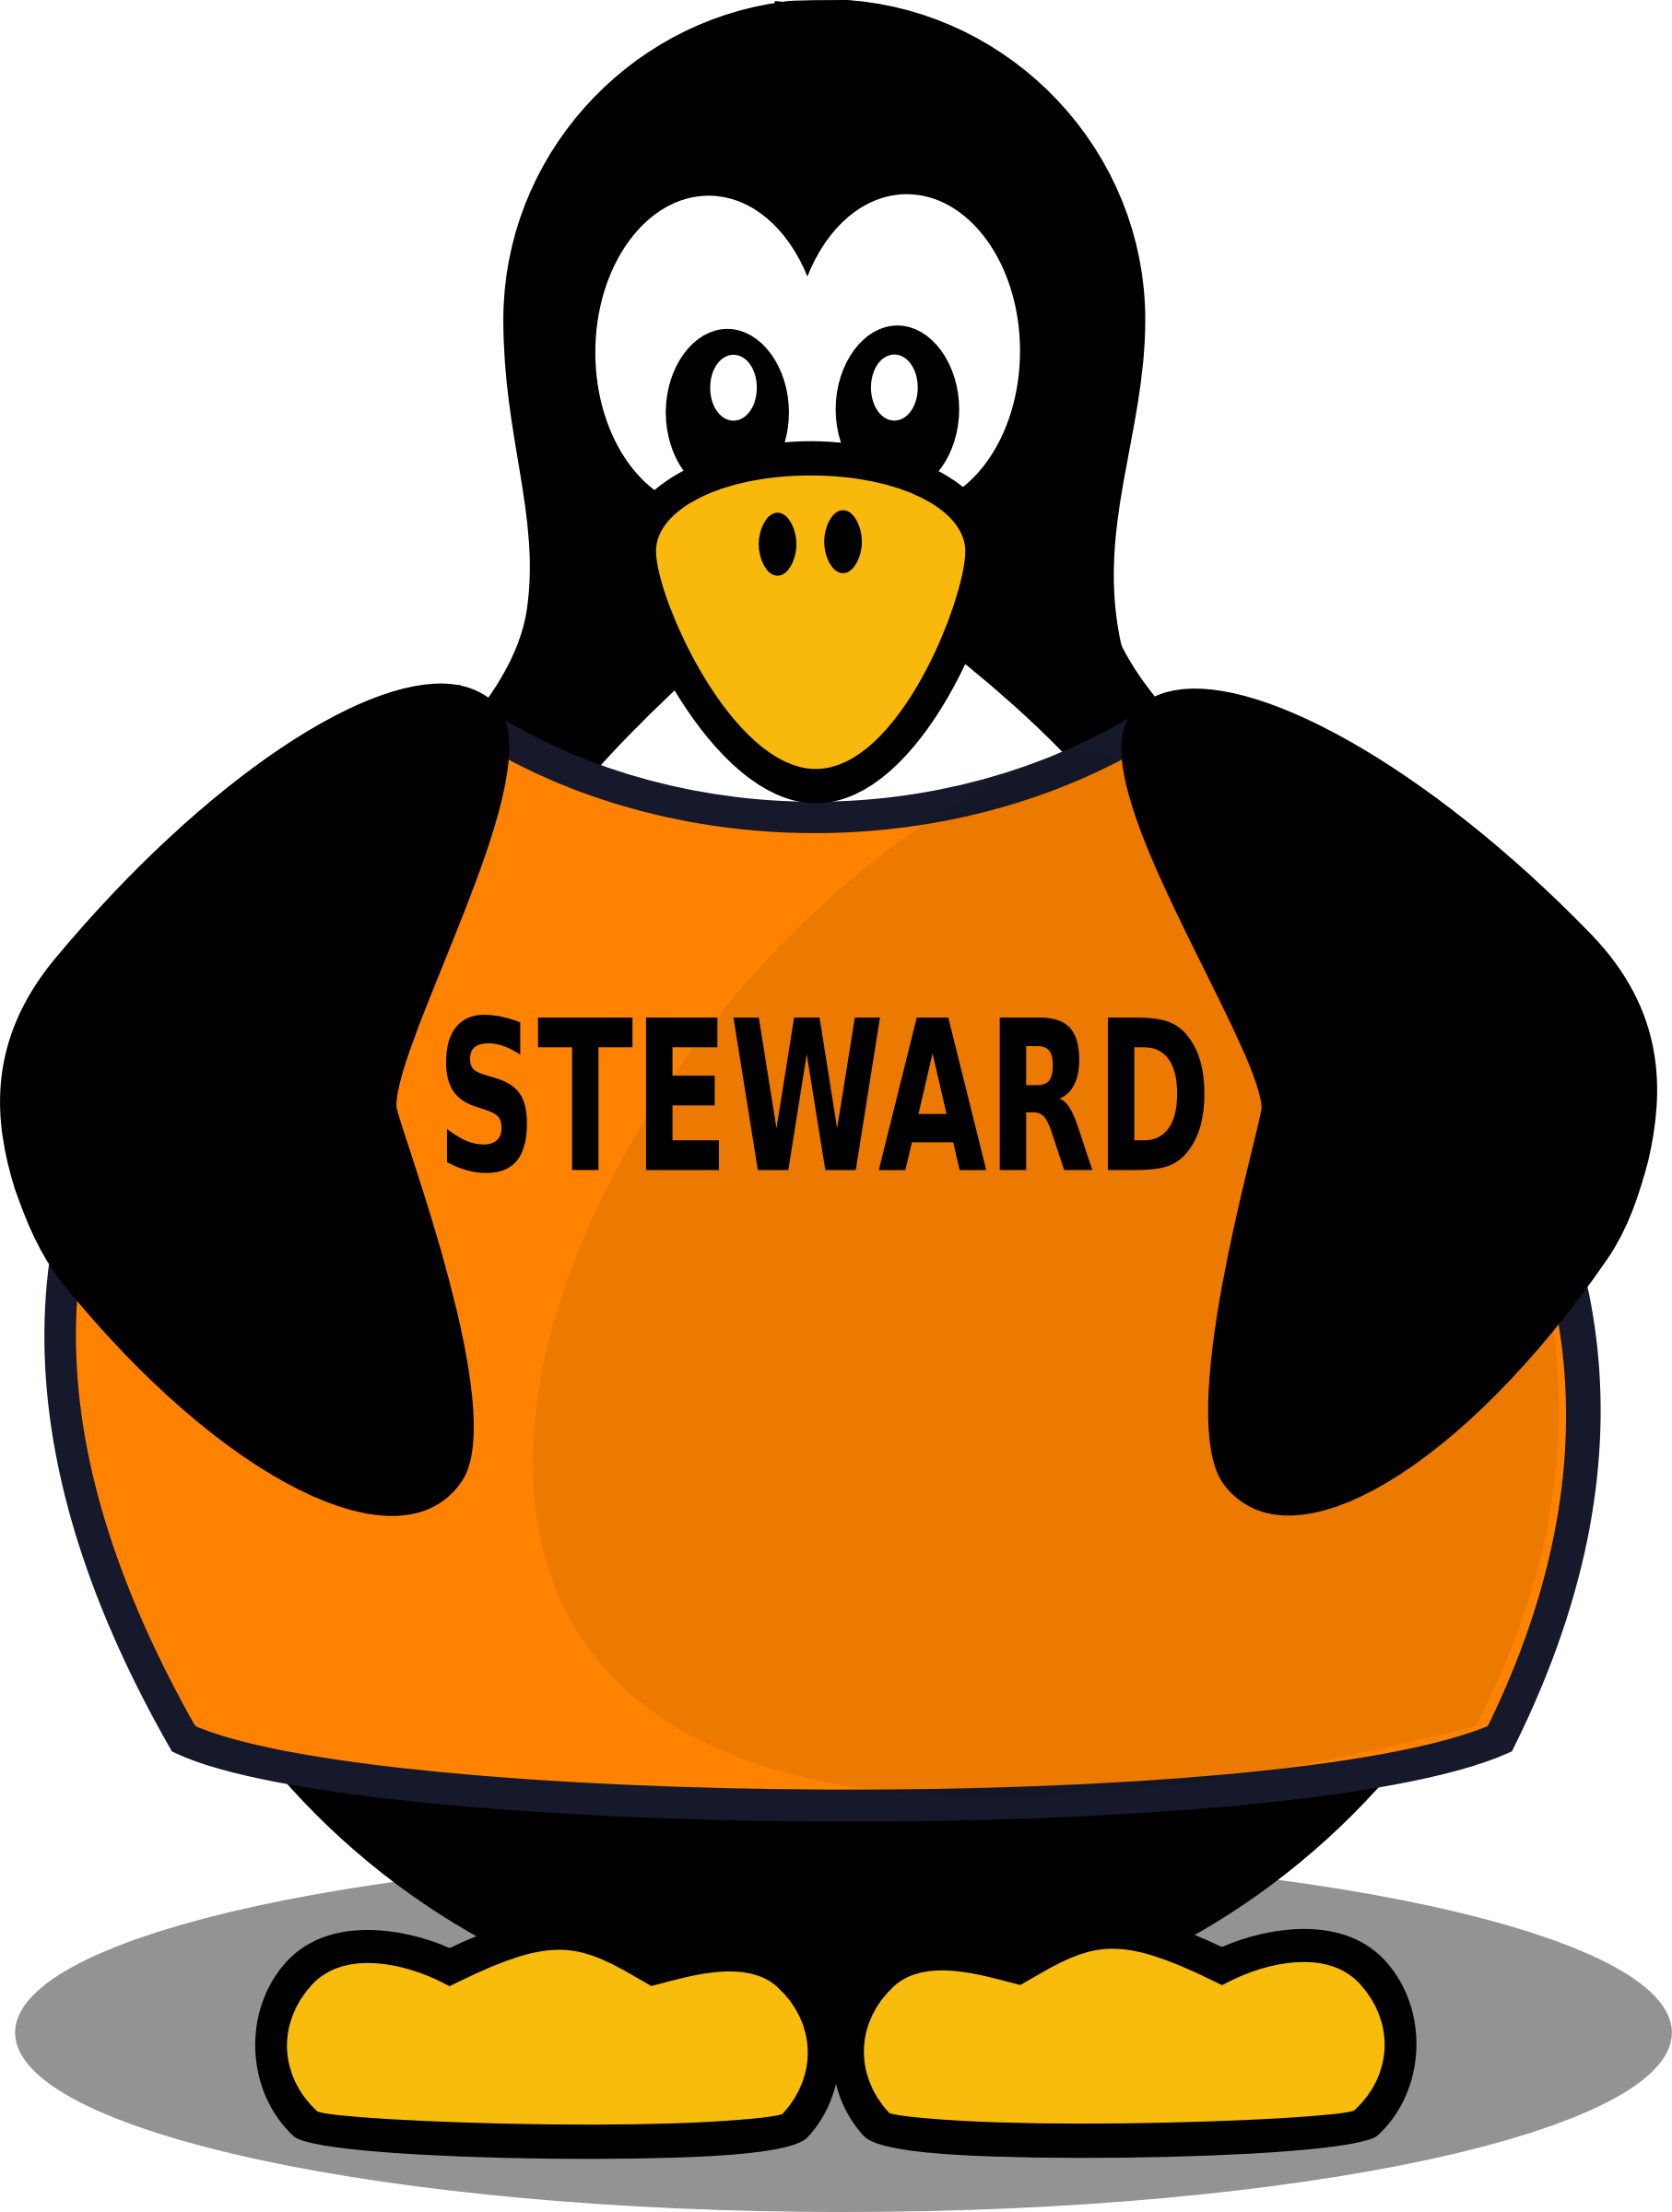 Steward penguin by Firkin